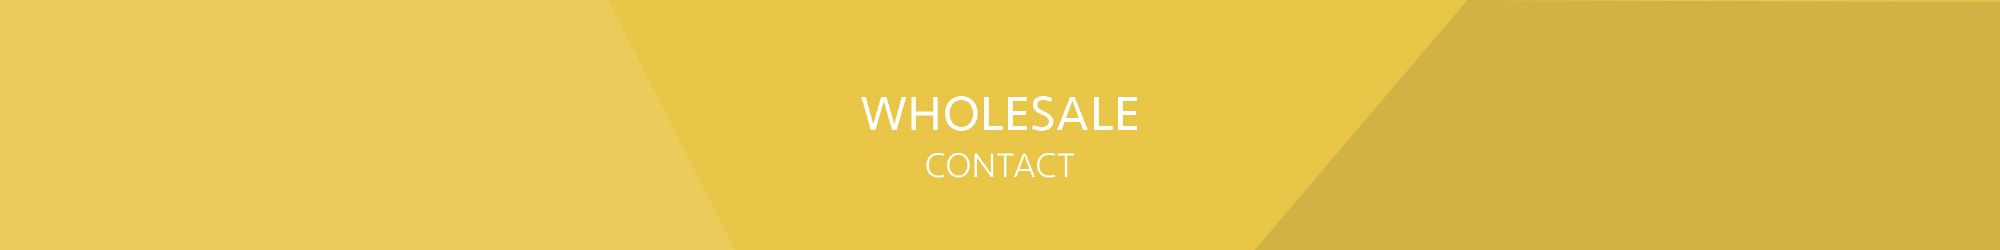 Contact Wholesale